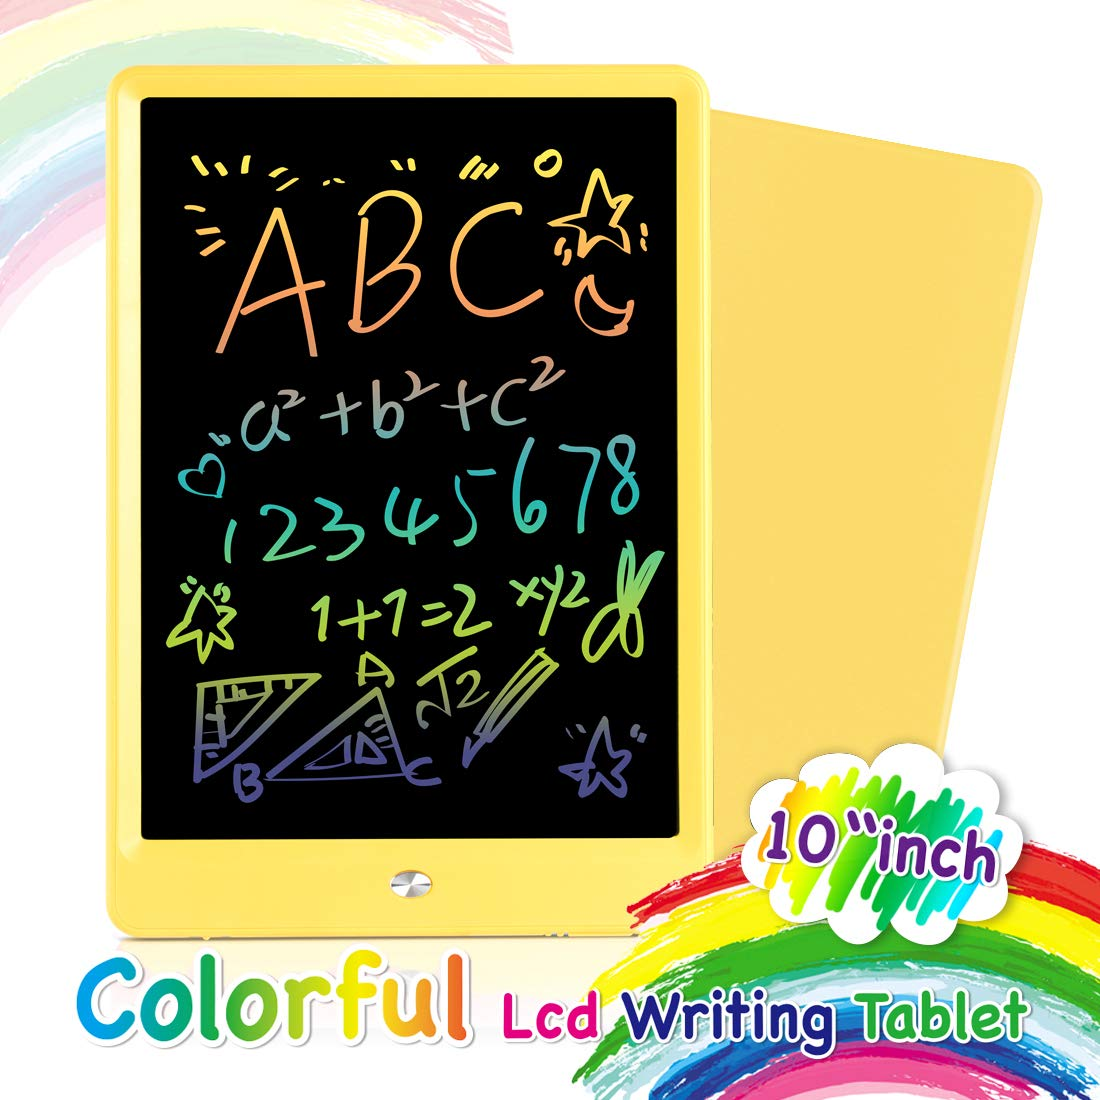 Orsen LCD Writing Tablet 10 Inch Colorful Doodle Board Drawing Tablet Erasable Reusable Writing Pad